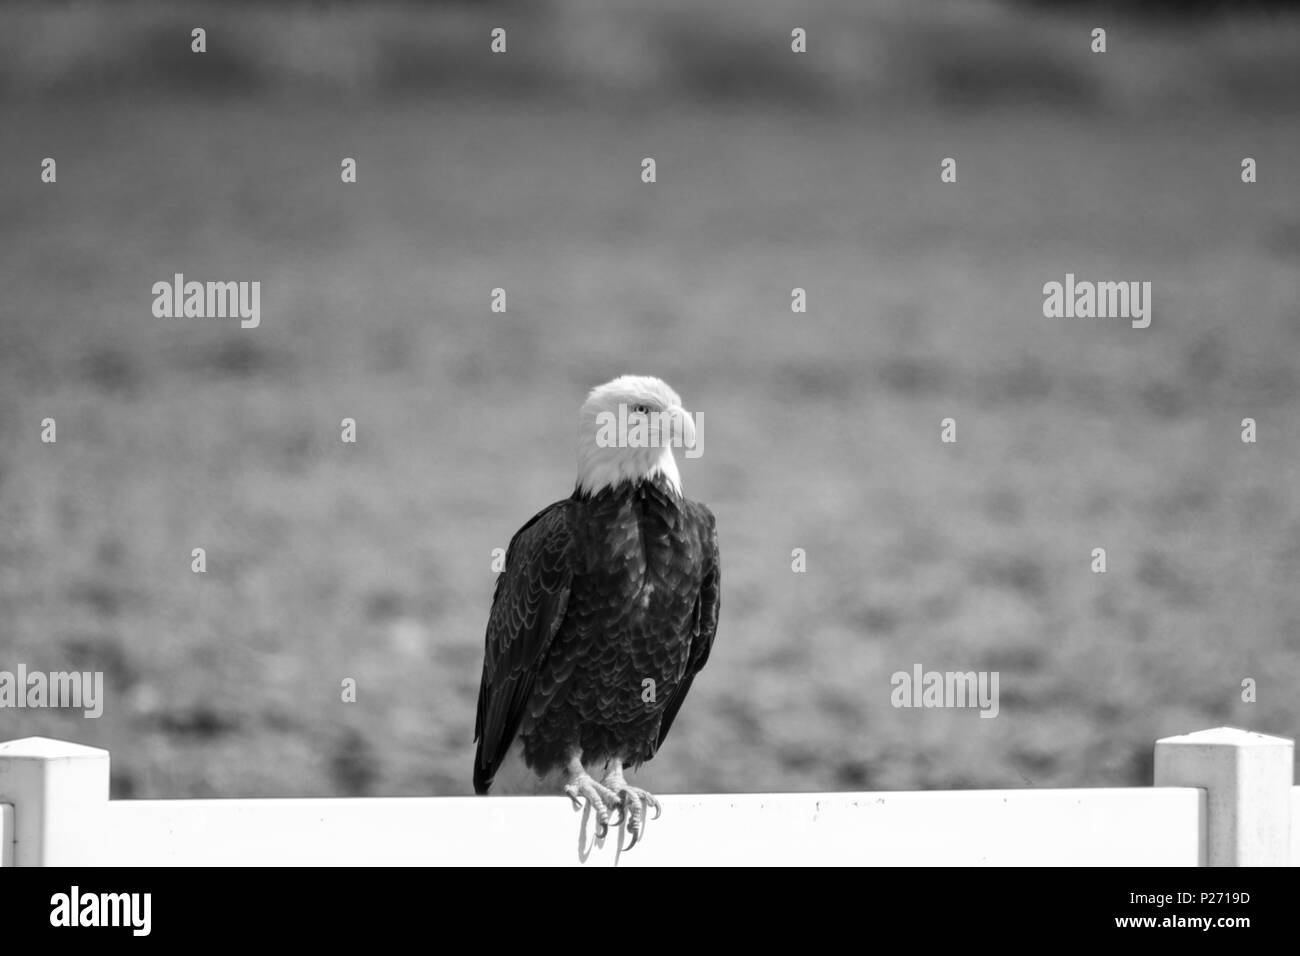 Perch Black And White Stock Photos Images Alamy Bald Eagle Diagram Free Download Wiring Diagrams Pictures A Perched On Fence Image